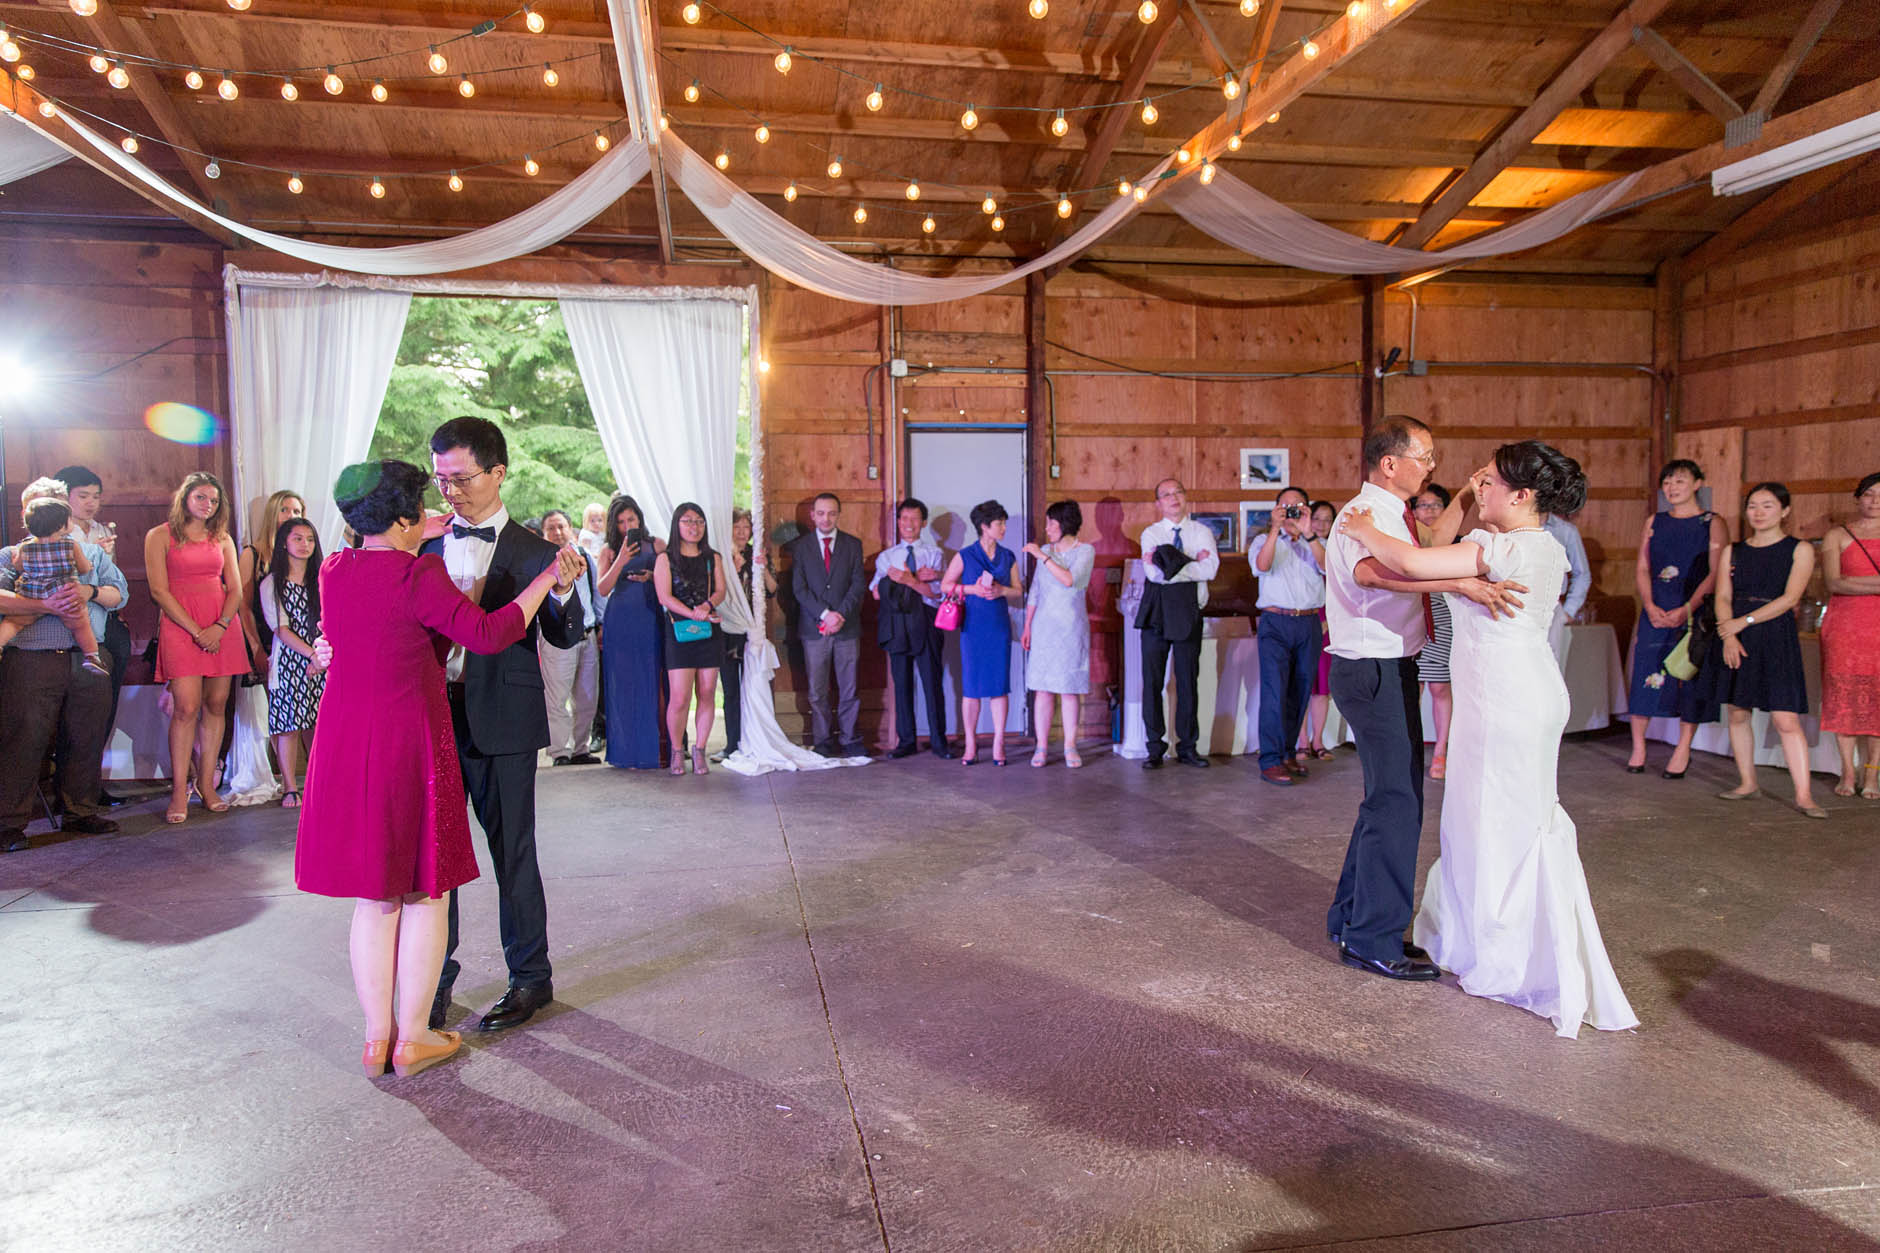 father-daugher-mother-son-dance-wedding